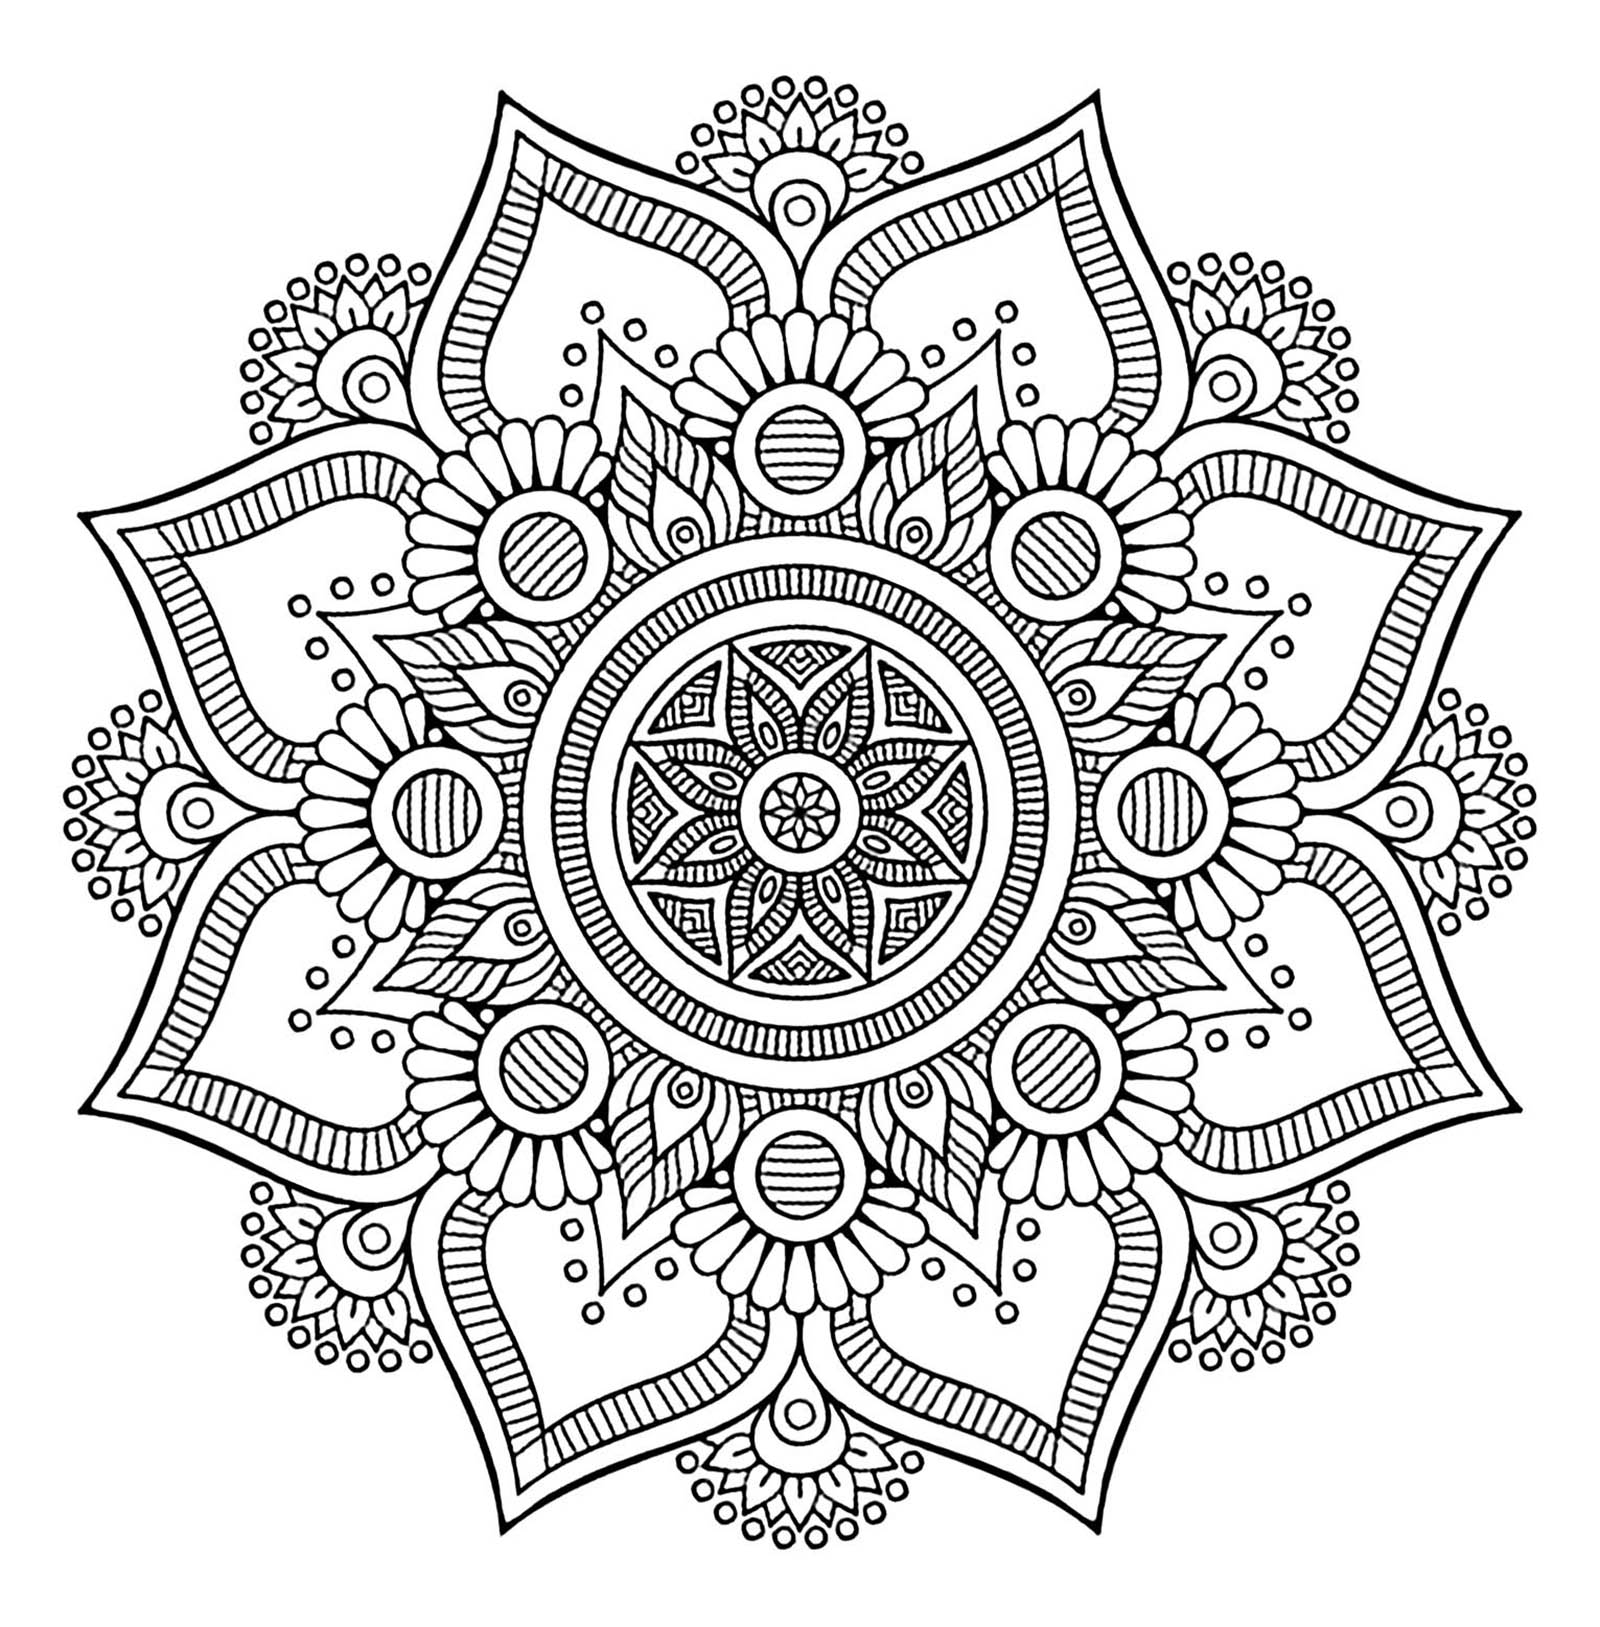 coloring mandala with color mandalas to color for children mandalas kids coloring pages with coloring mandala color